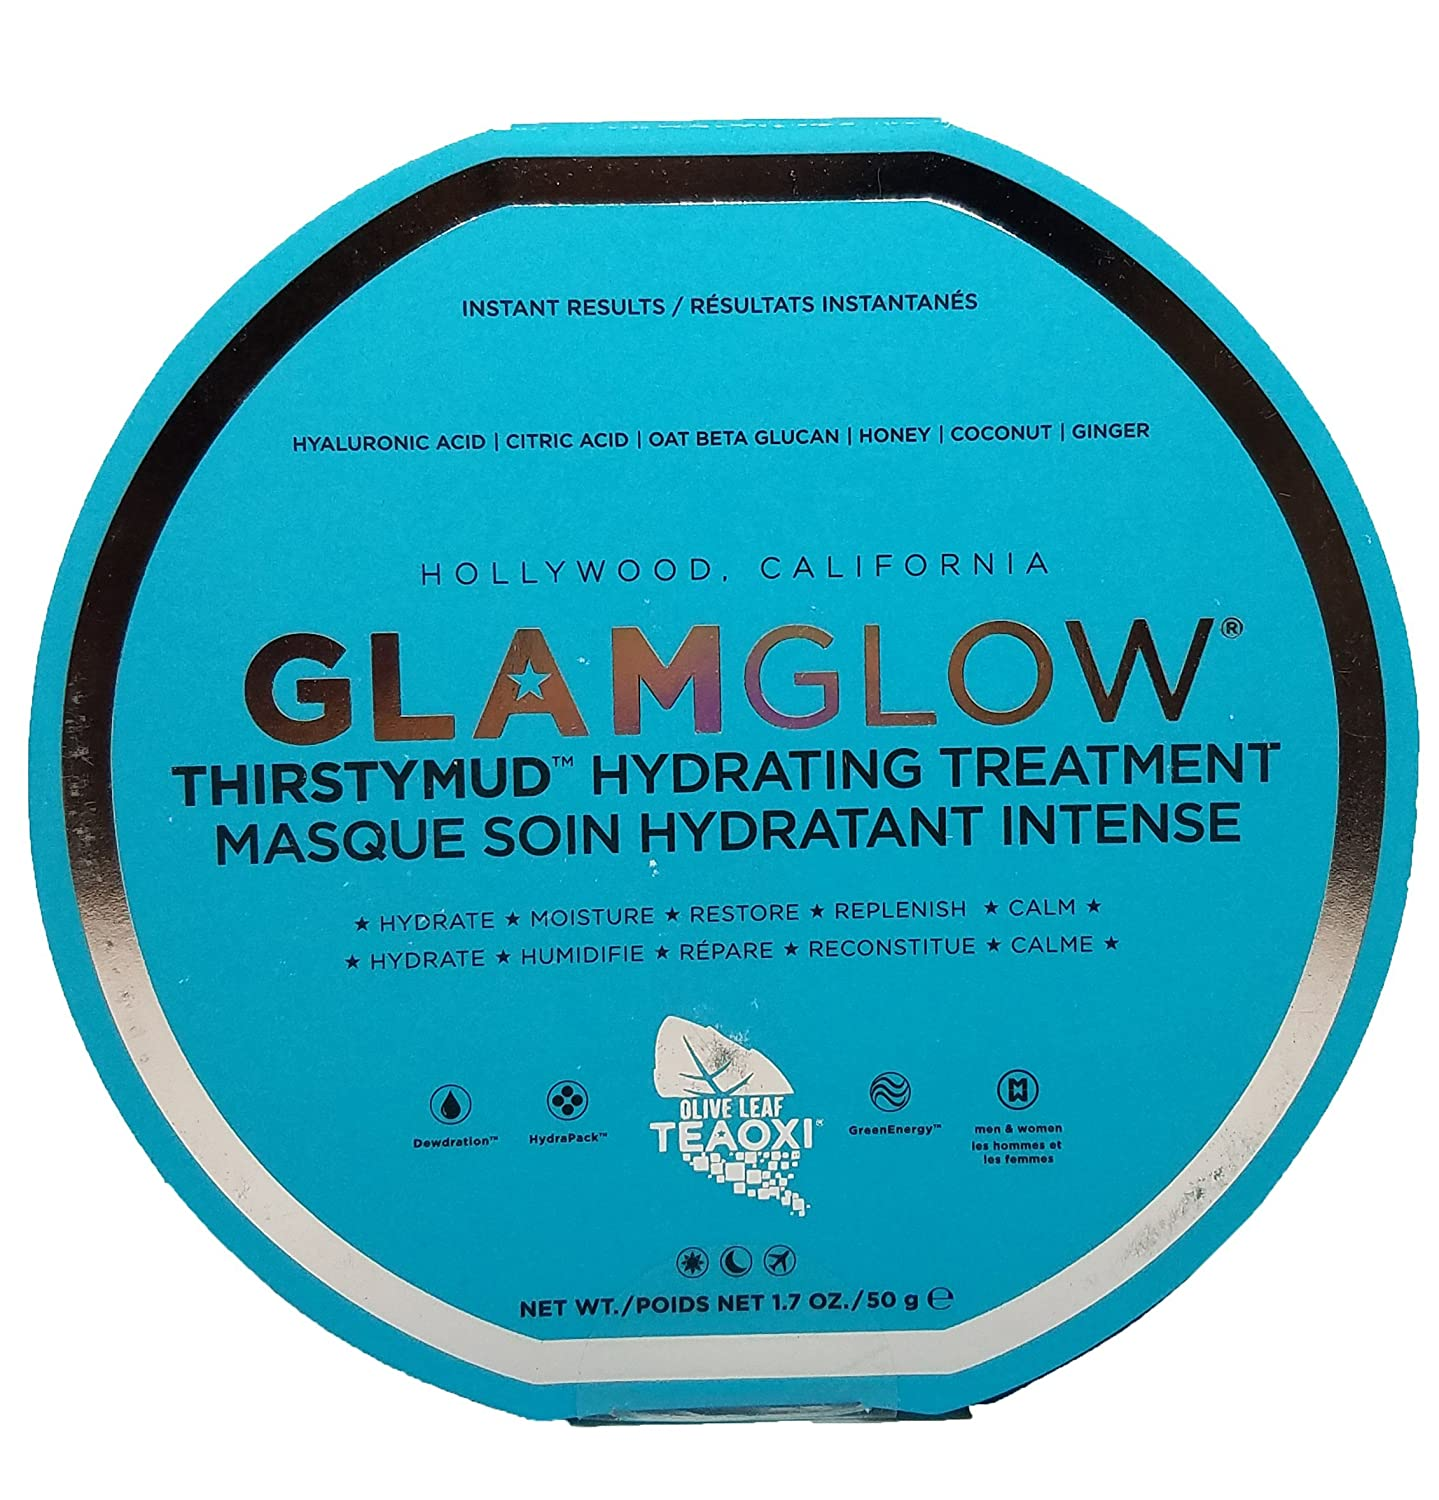 GlamGlow Thirstymud Hydrating Treatment 1.7-Ounce GGTM001